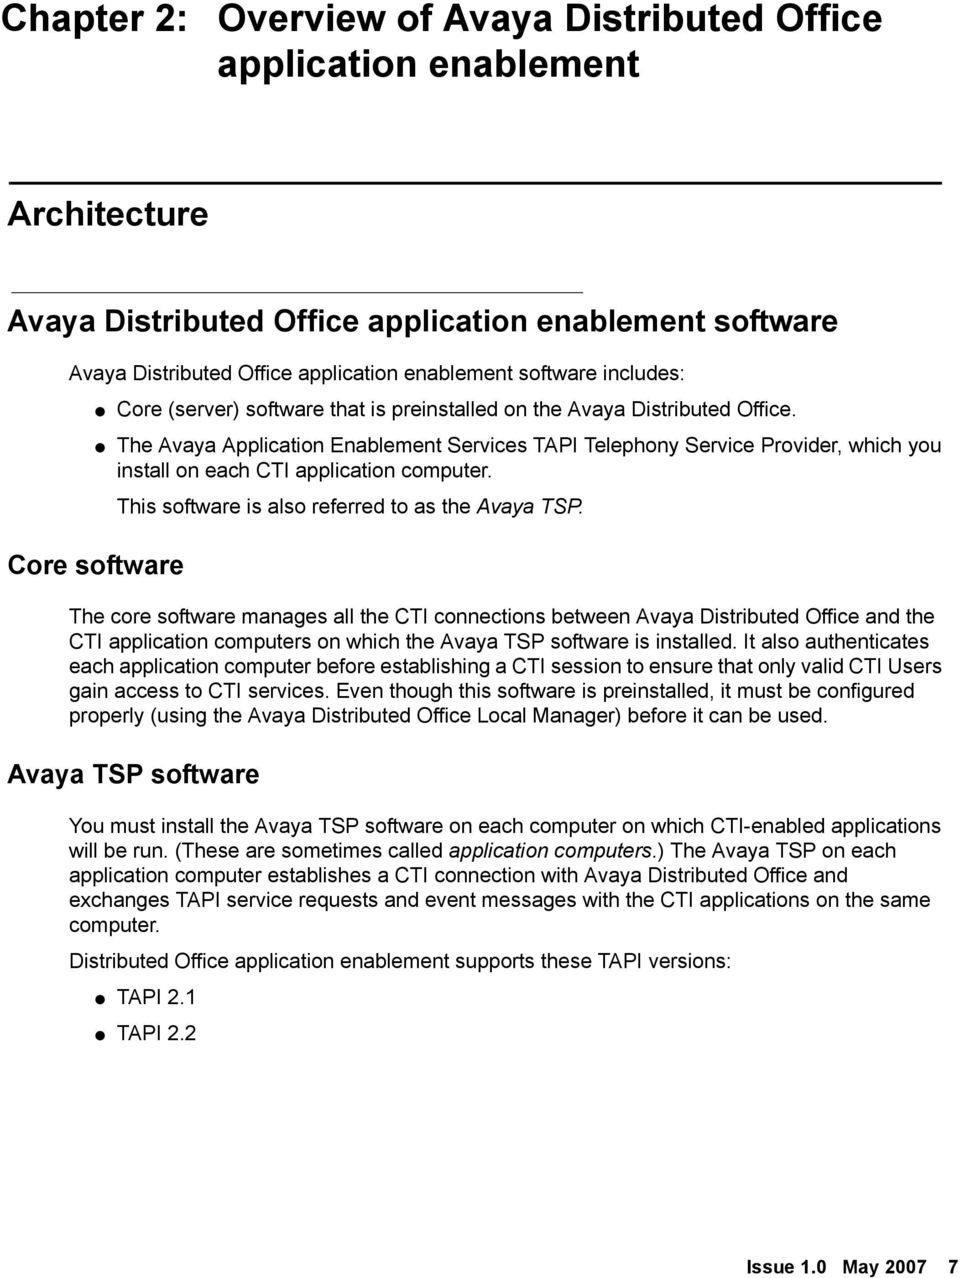 The Avaya Application Enablement Services TAPI Telephony Service Provider, which you install on each CTI application computer. This software is also referred to as the Avaya TSP.